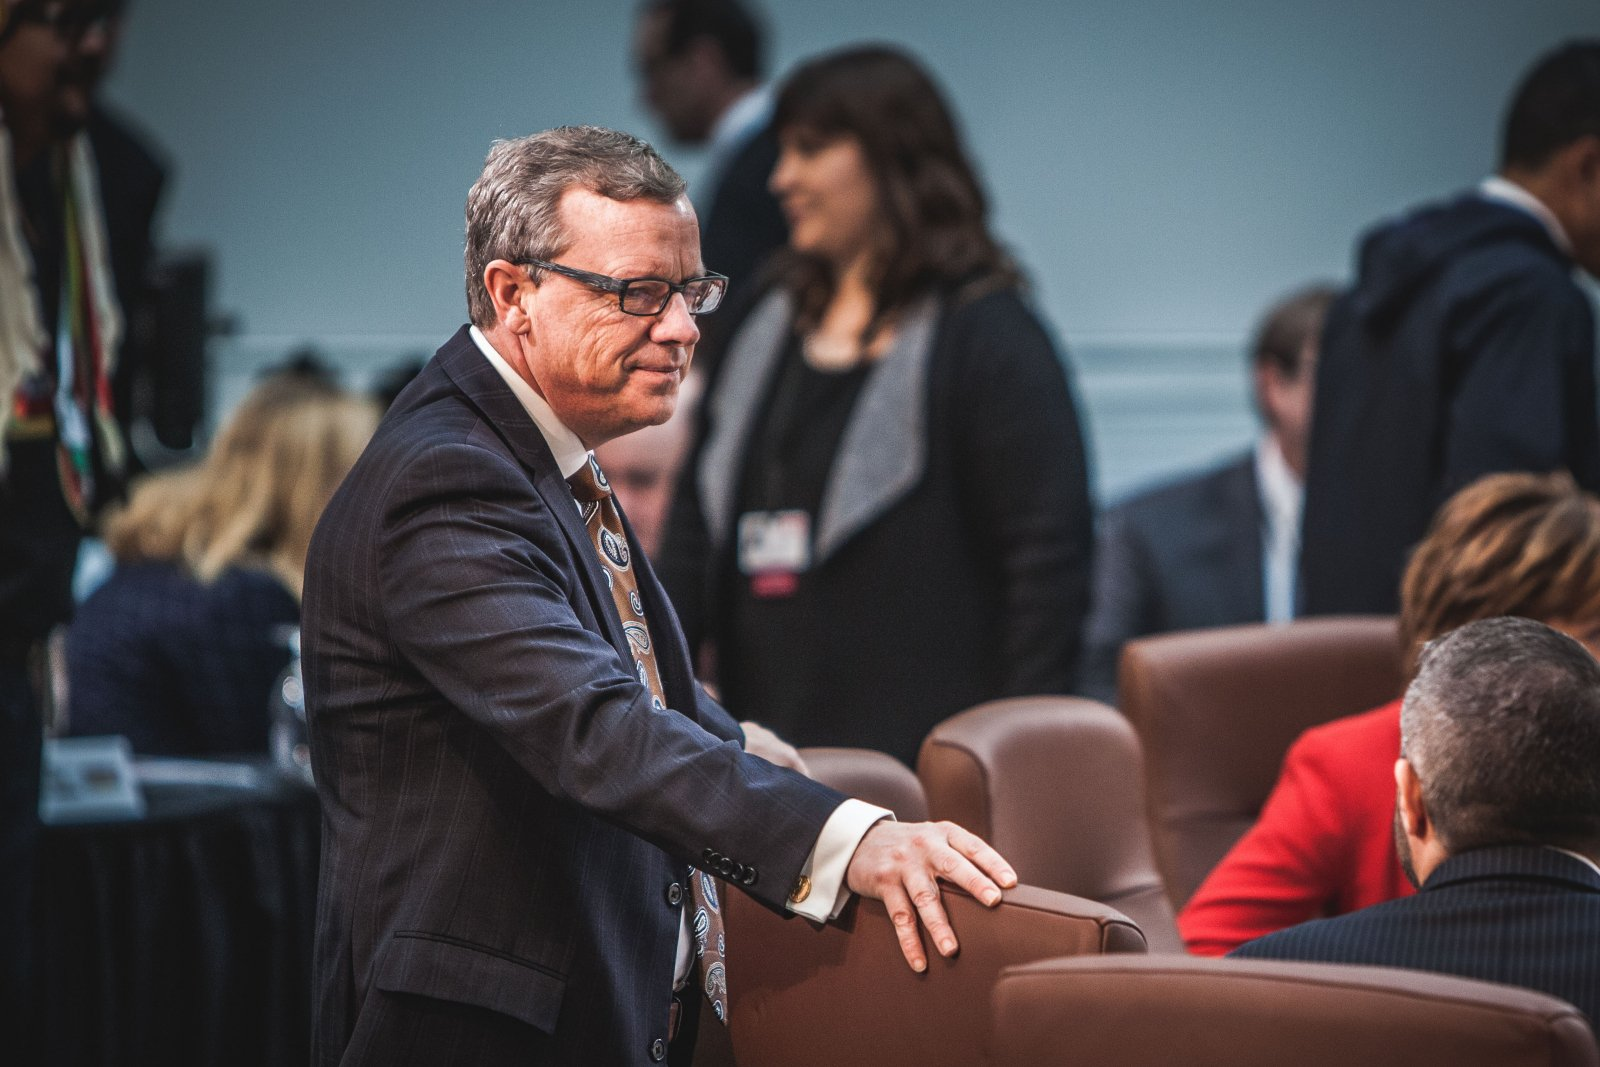 Brad Wall, climate change